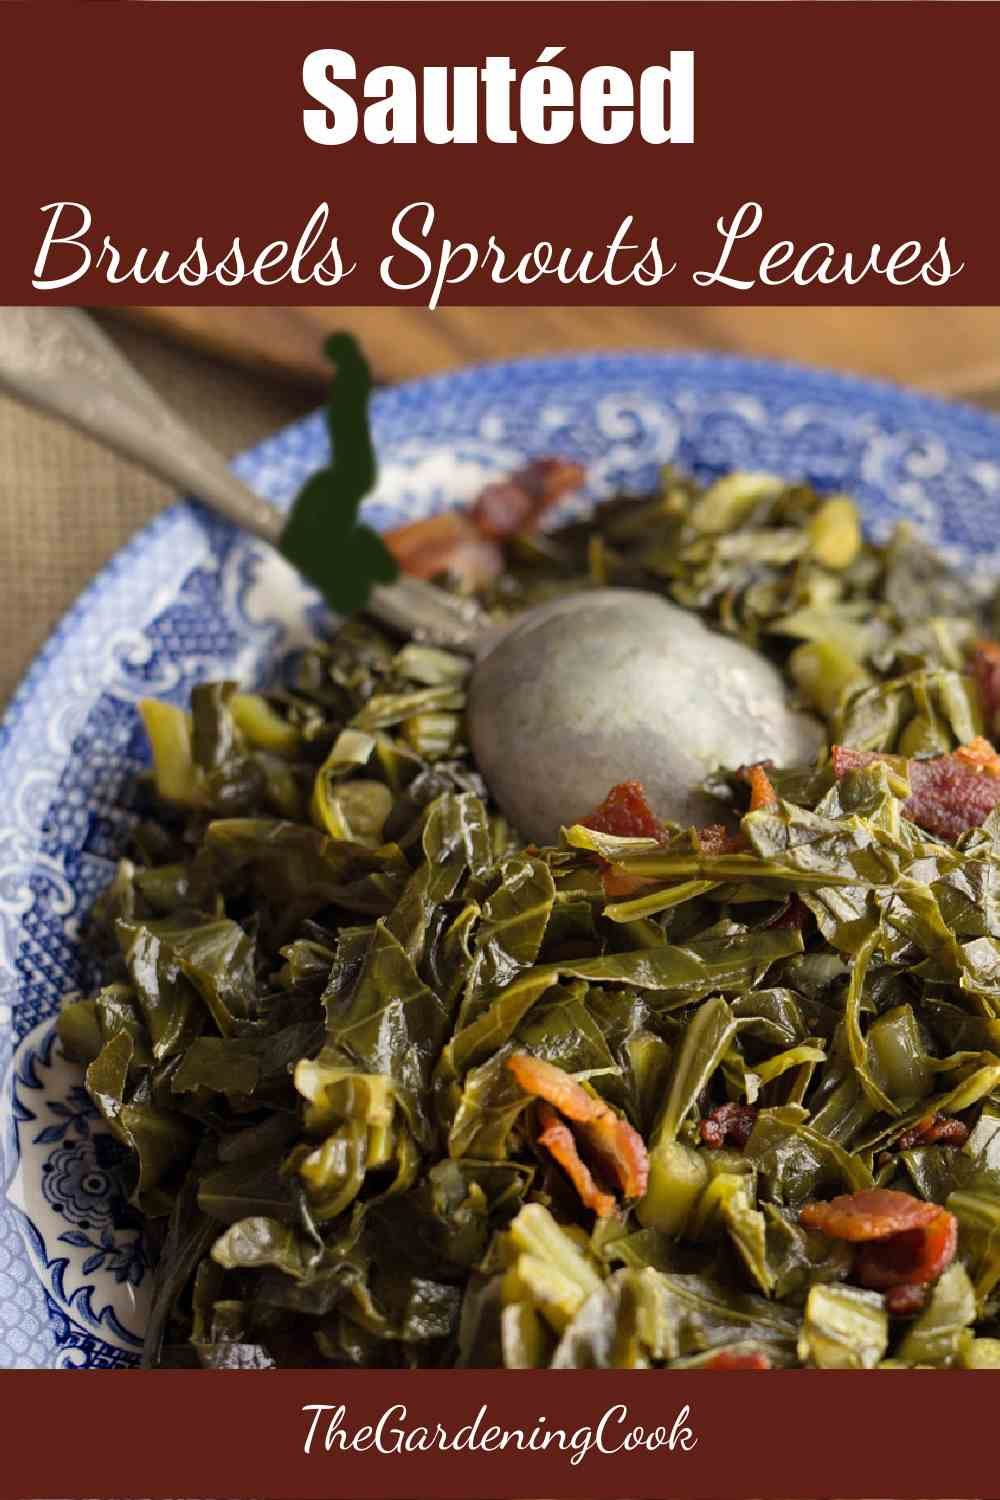 Brussels sprouts leaves in a blue dish with words Sautéed Brussels sprouts leaves.